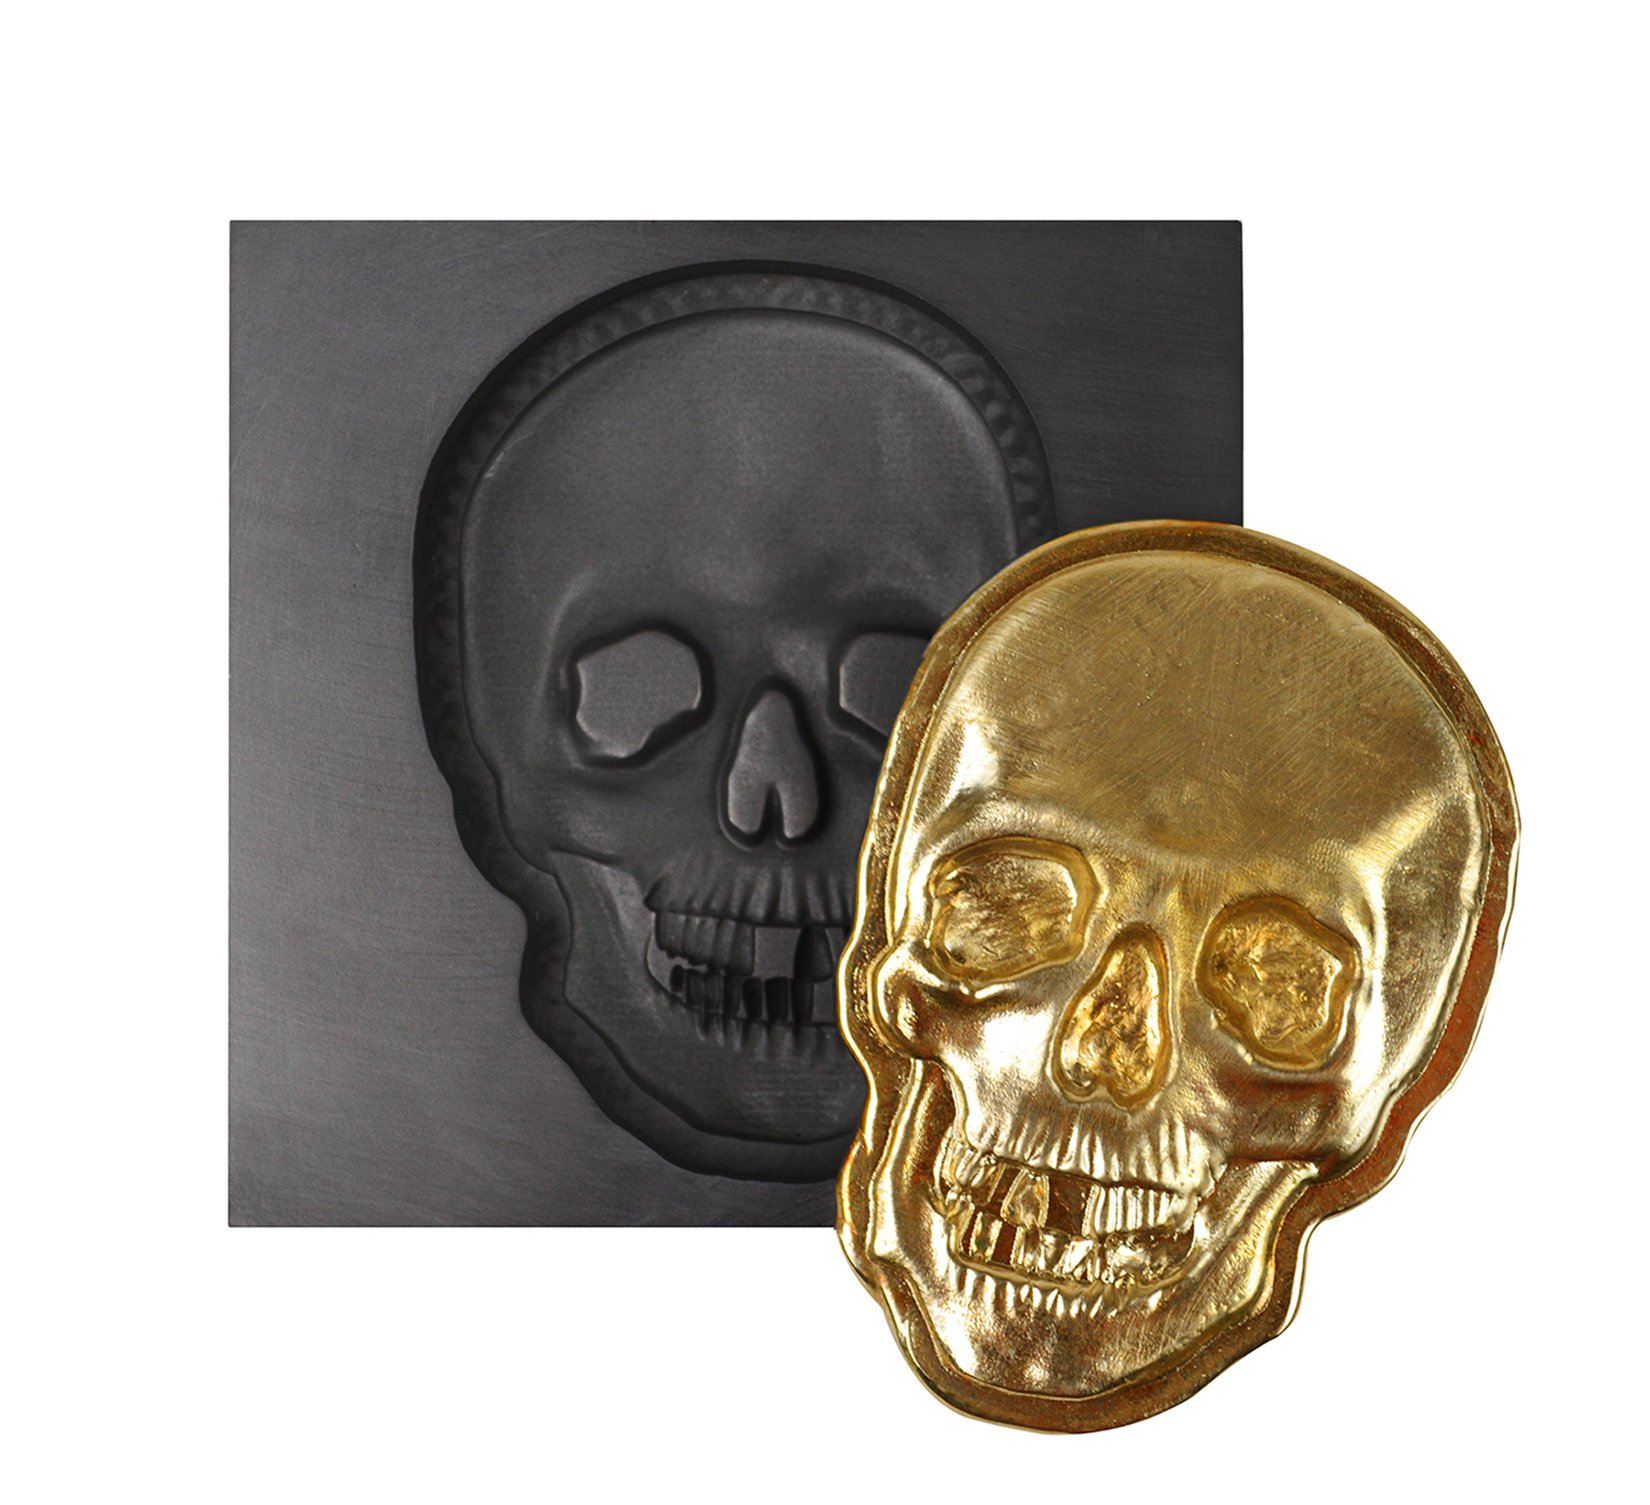 Large - Skull 3D Graphite Ingot Mold for Precious Metal Casting Gold Silver Copper Melting by PMC Supplies LLC